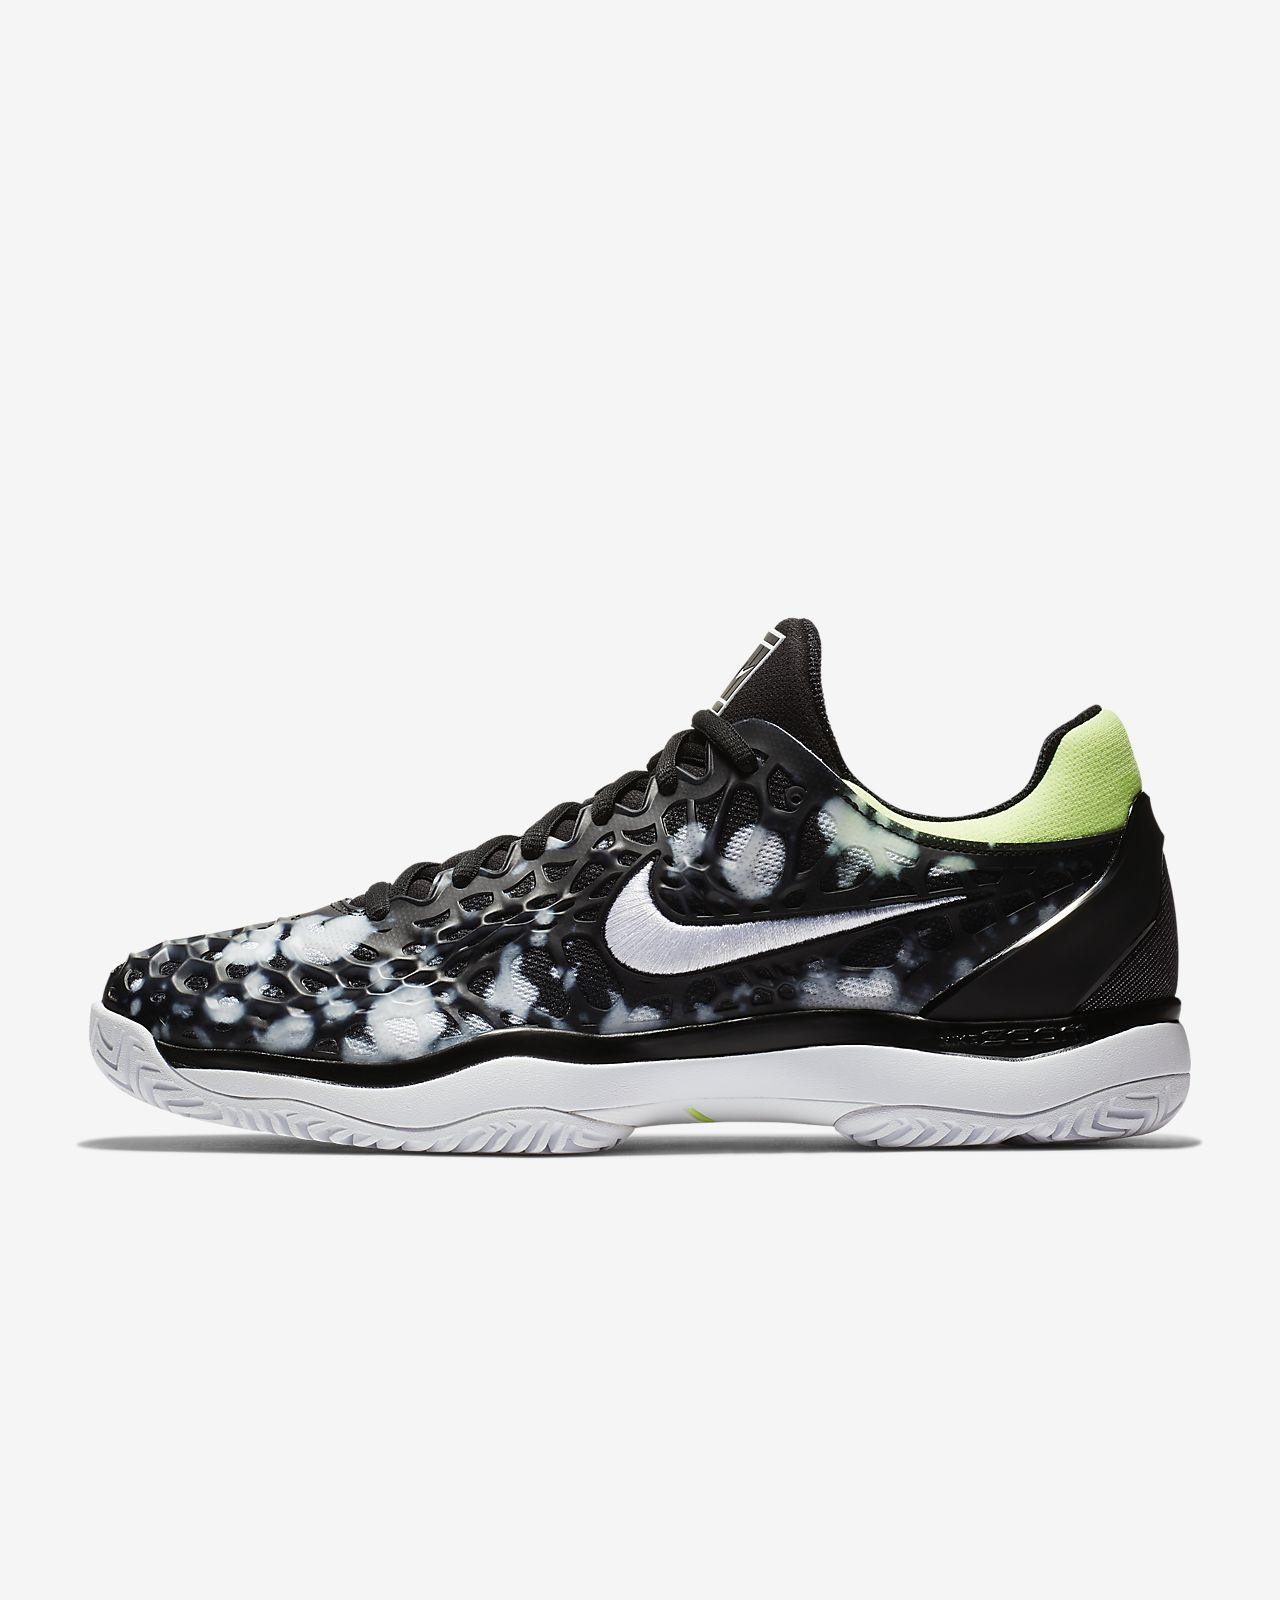 Uomo Cage Air Nike It Da Scarpa Court Zoom Hard Tennis 3 nXqzvxv1W